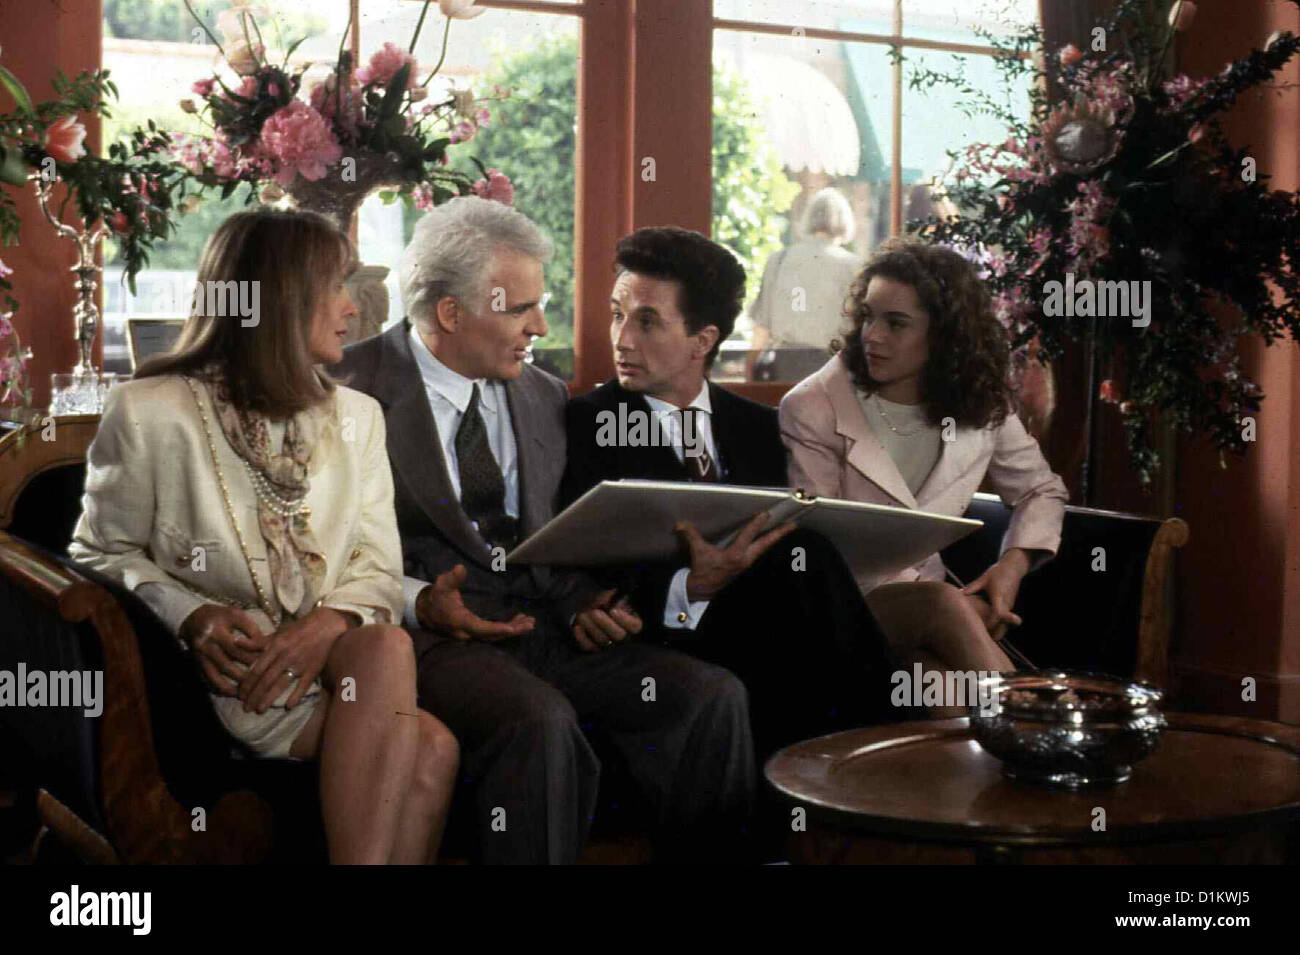 Father Of The Bride Film Stock Photos  Father Of The Bride Film Stock Images  Alamy